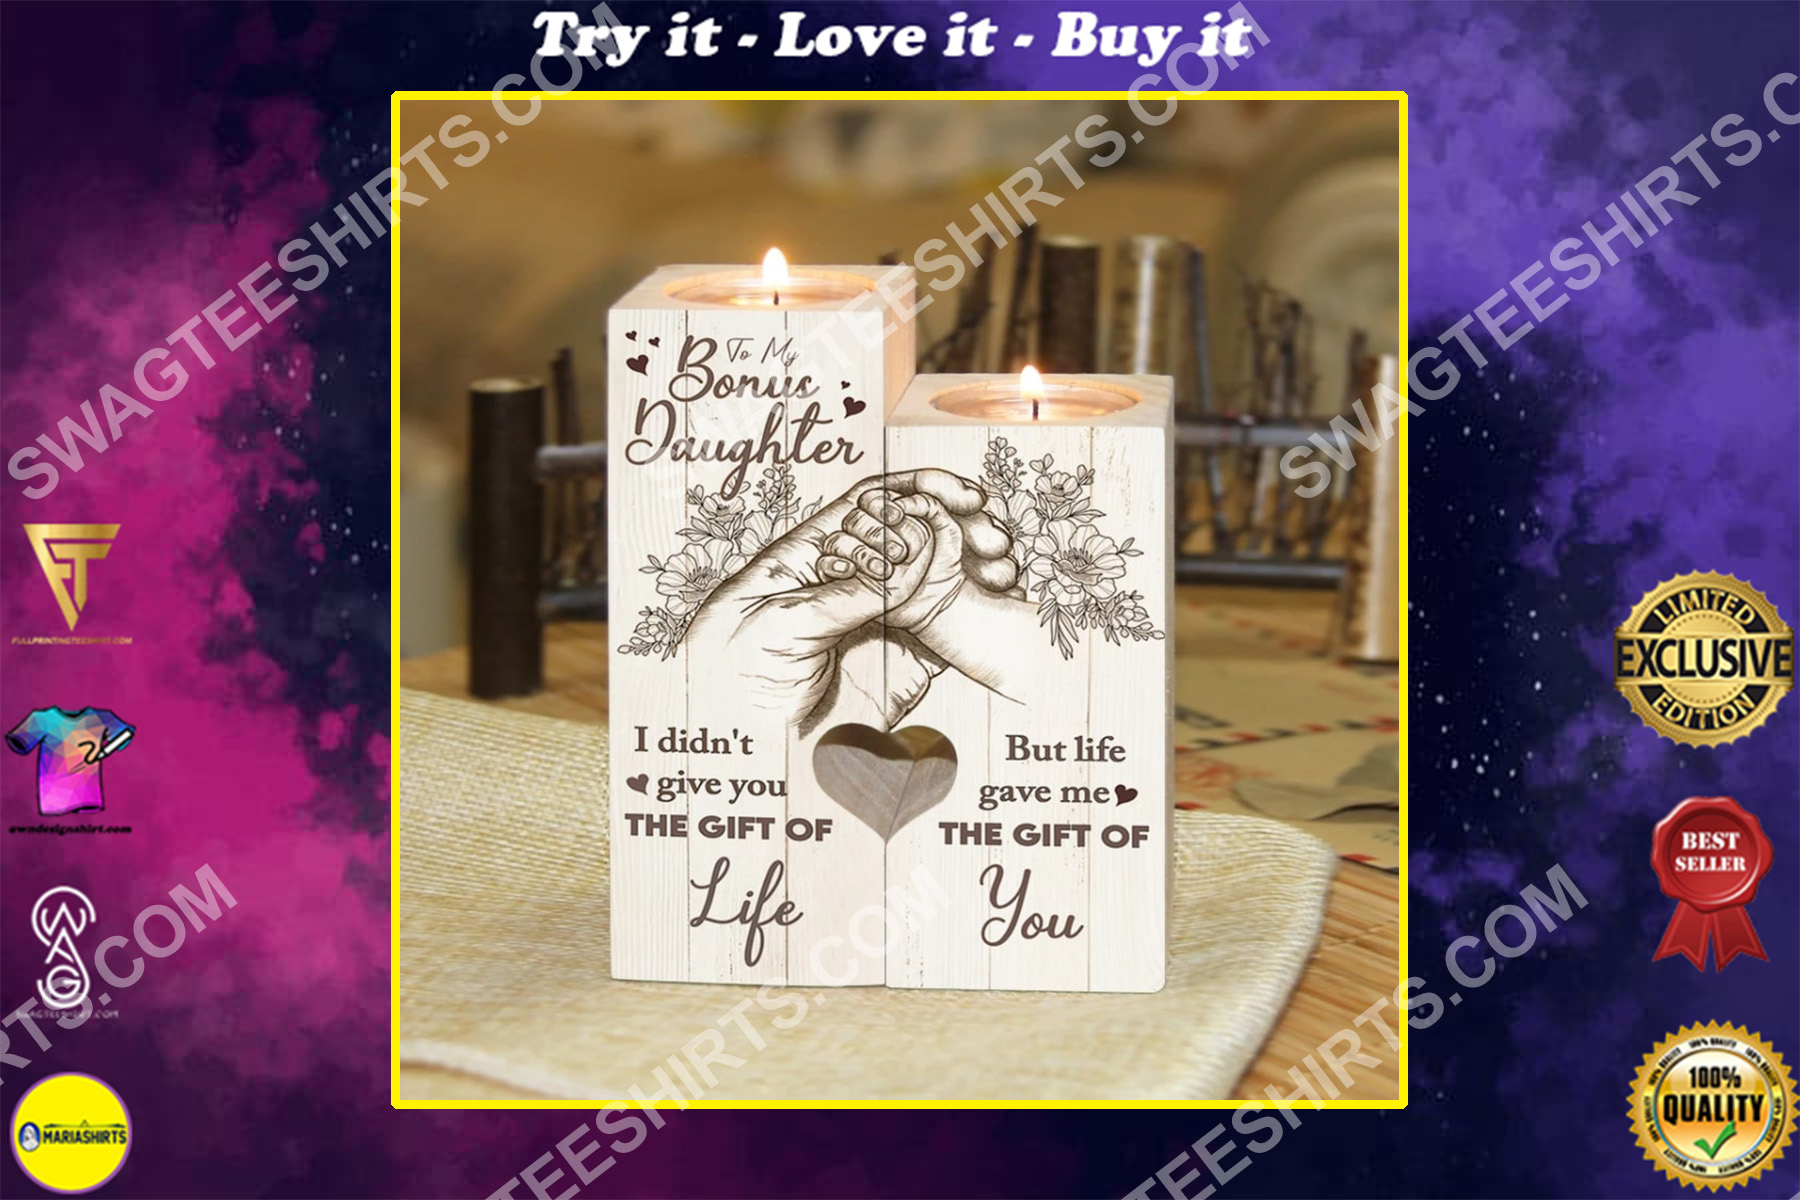 floral to my bonus daughter life gave me the gift of you candle holder